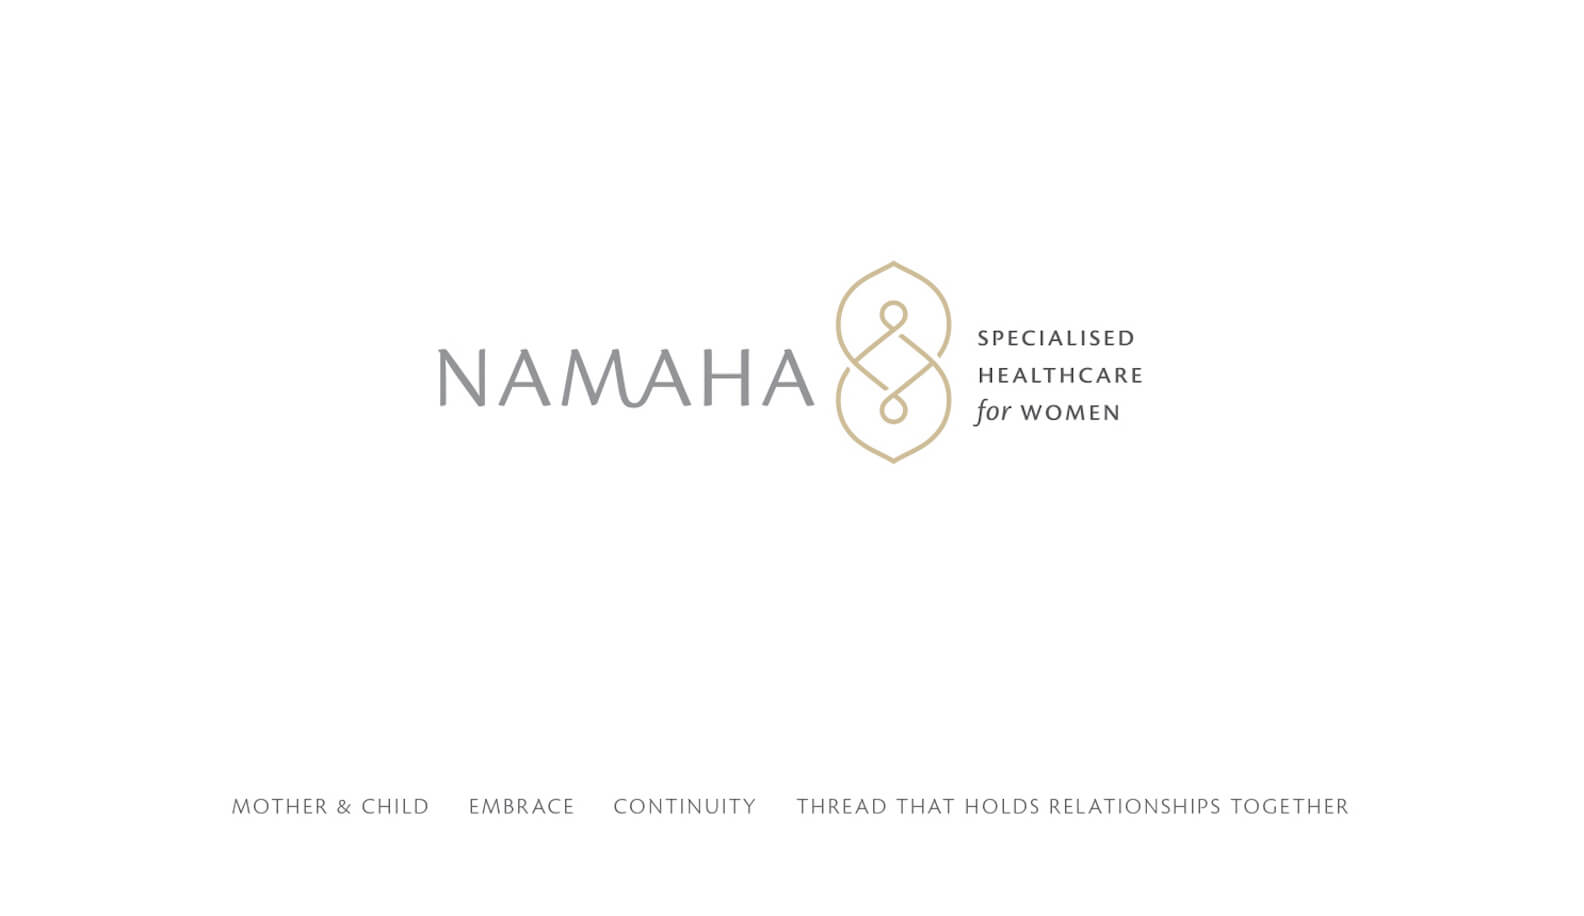 - The Namaha mark, composed of two intertwined forms, symbolises the thread of continuity: mother and child, connections and relationships, life and birth. The umbilical-cord ligature between M and A spell Ma, alluding to not only motherhood in its literal sense, but also the idea of protection, trust, care and being nurtured. The colour palette is trustworthy, soothing and connotes mother earth, the universal nurturer and giver of life.